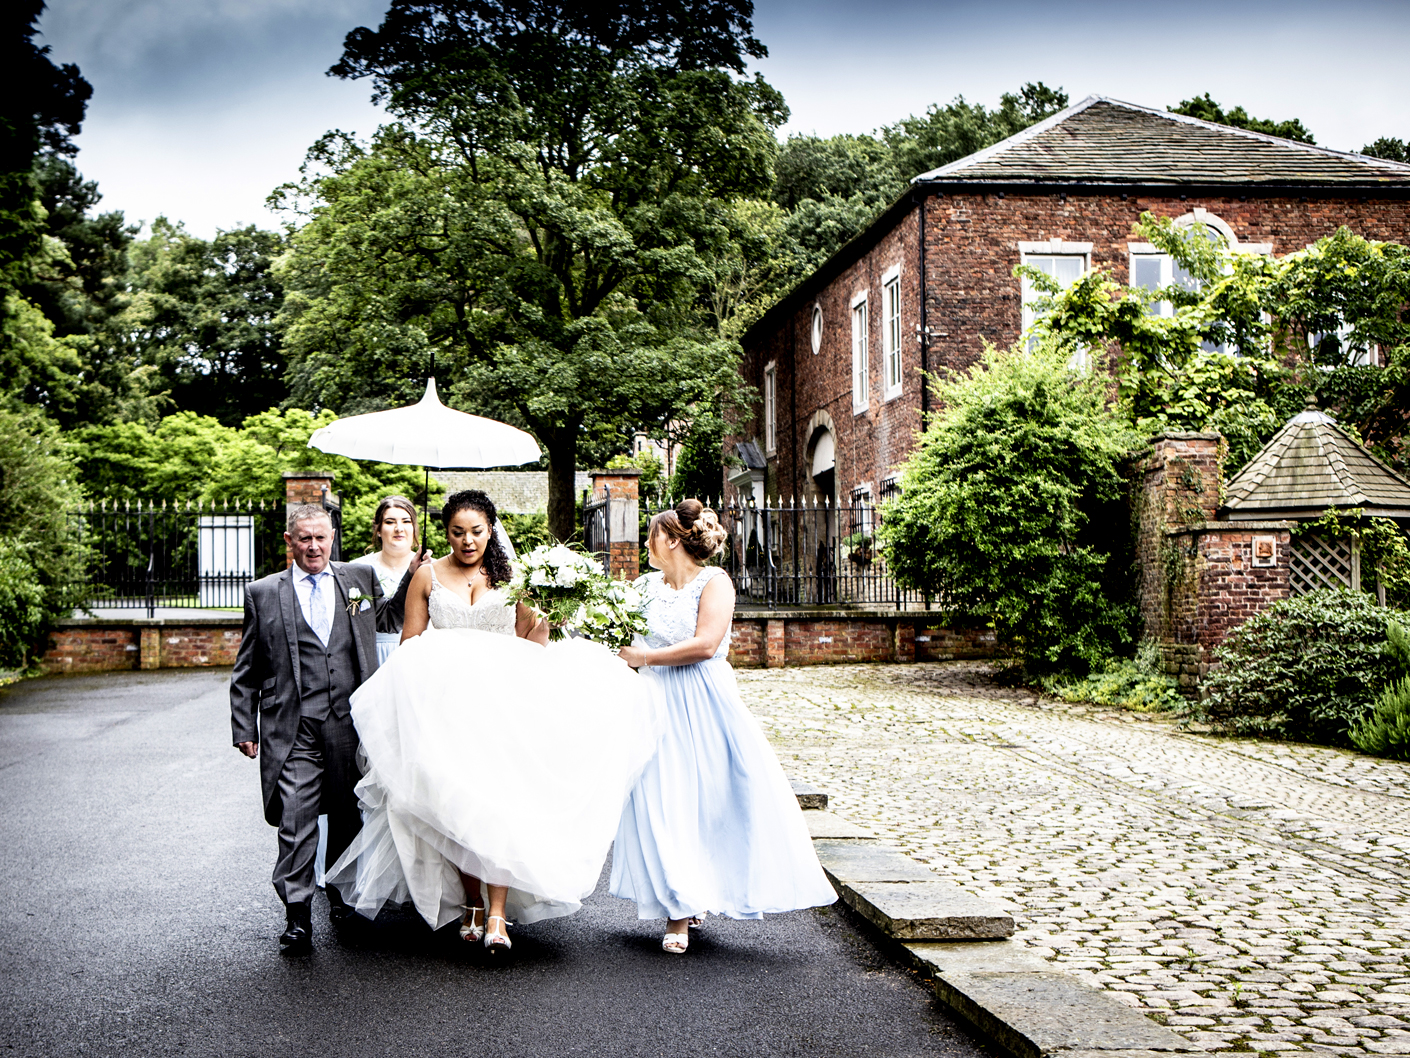 photography-of-the-bride-on-her-way-to-the-wedding-ceremony-at-adlington-hall-macclesfield-cheshire